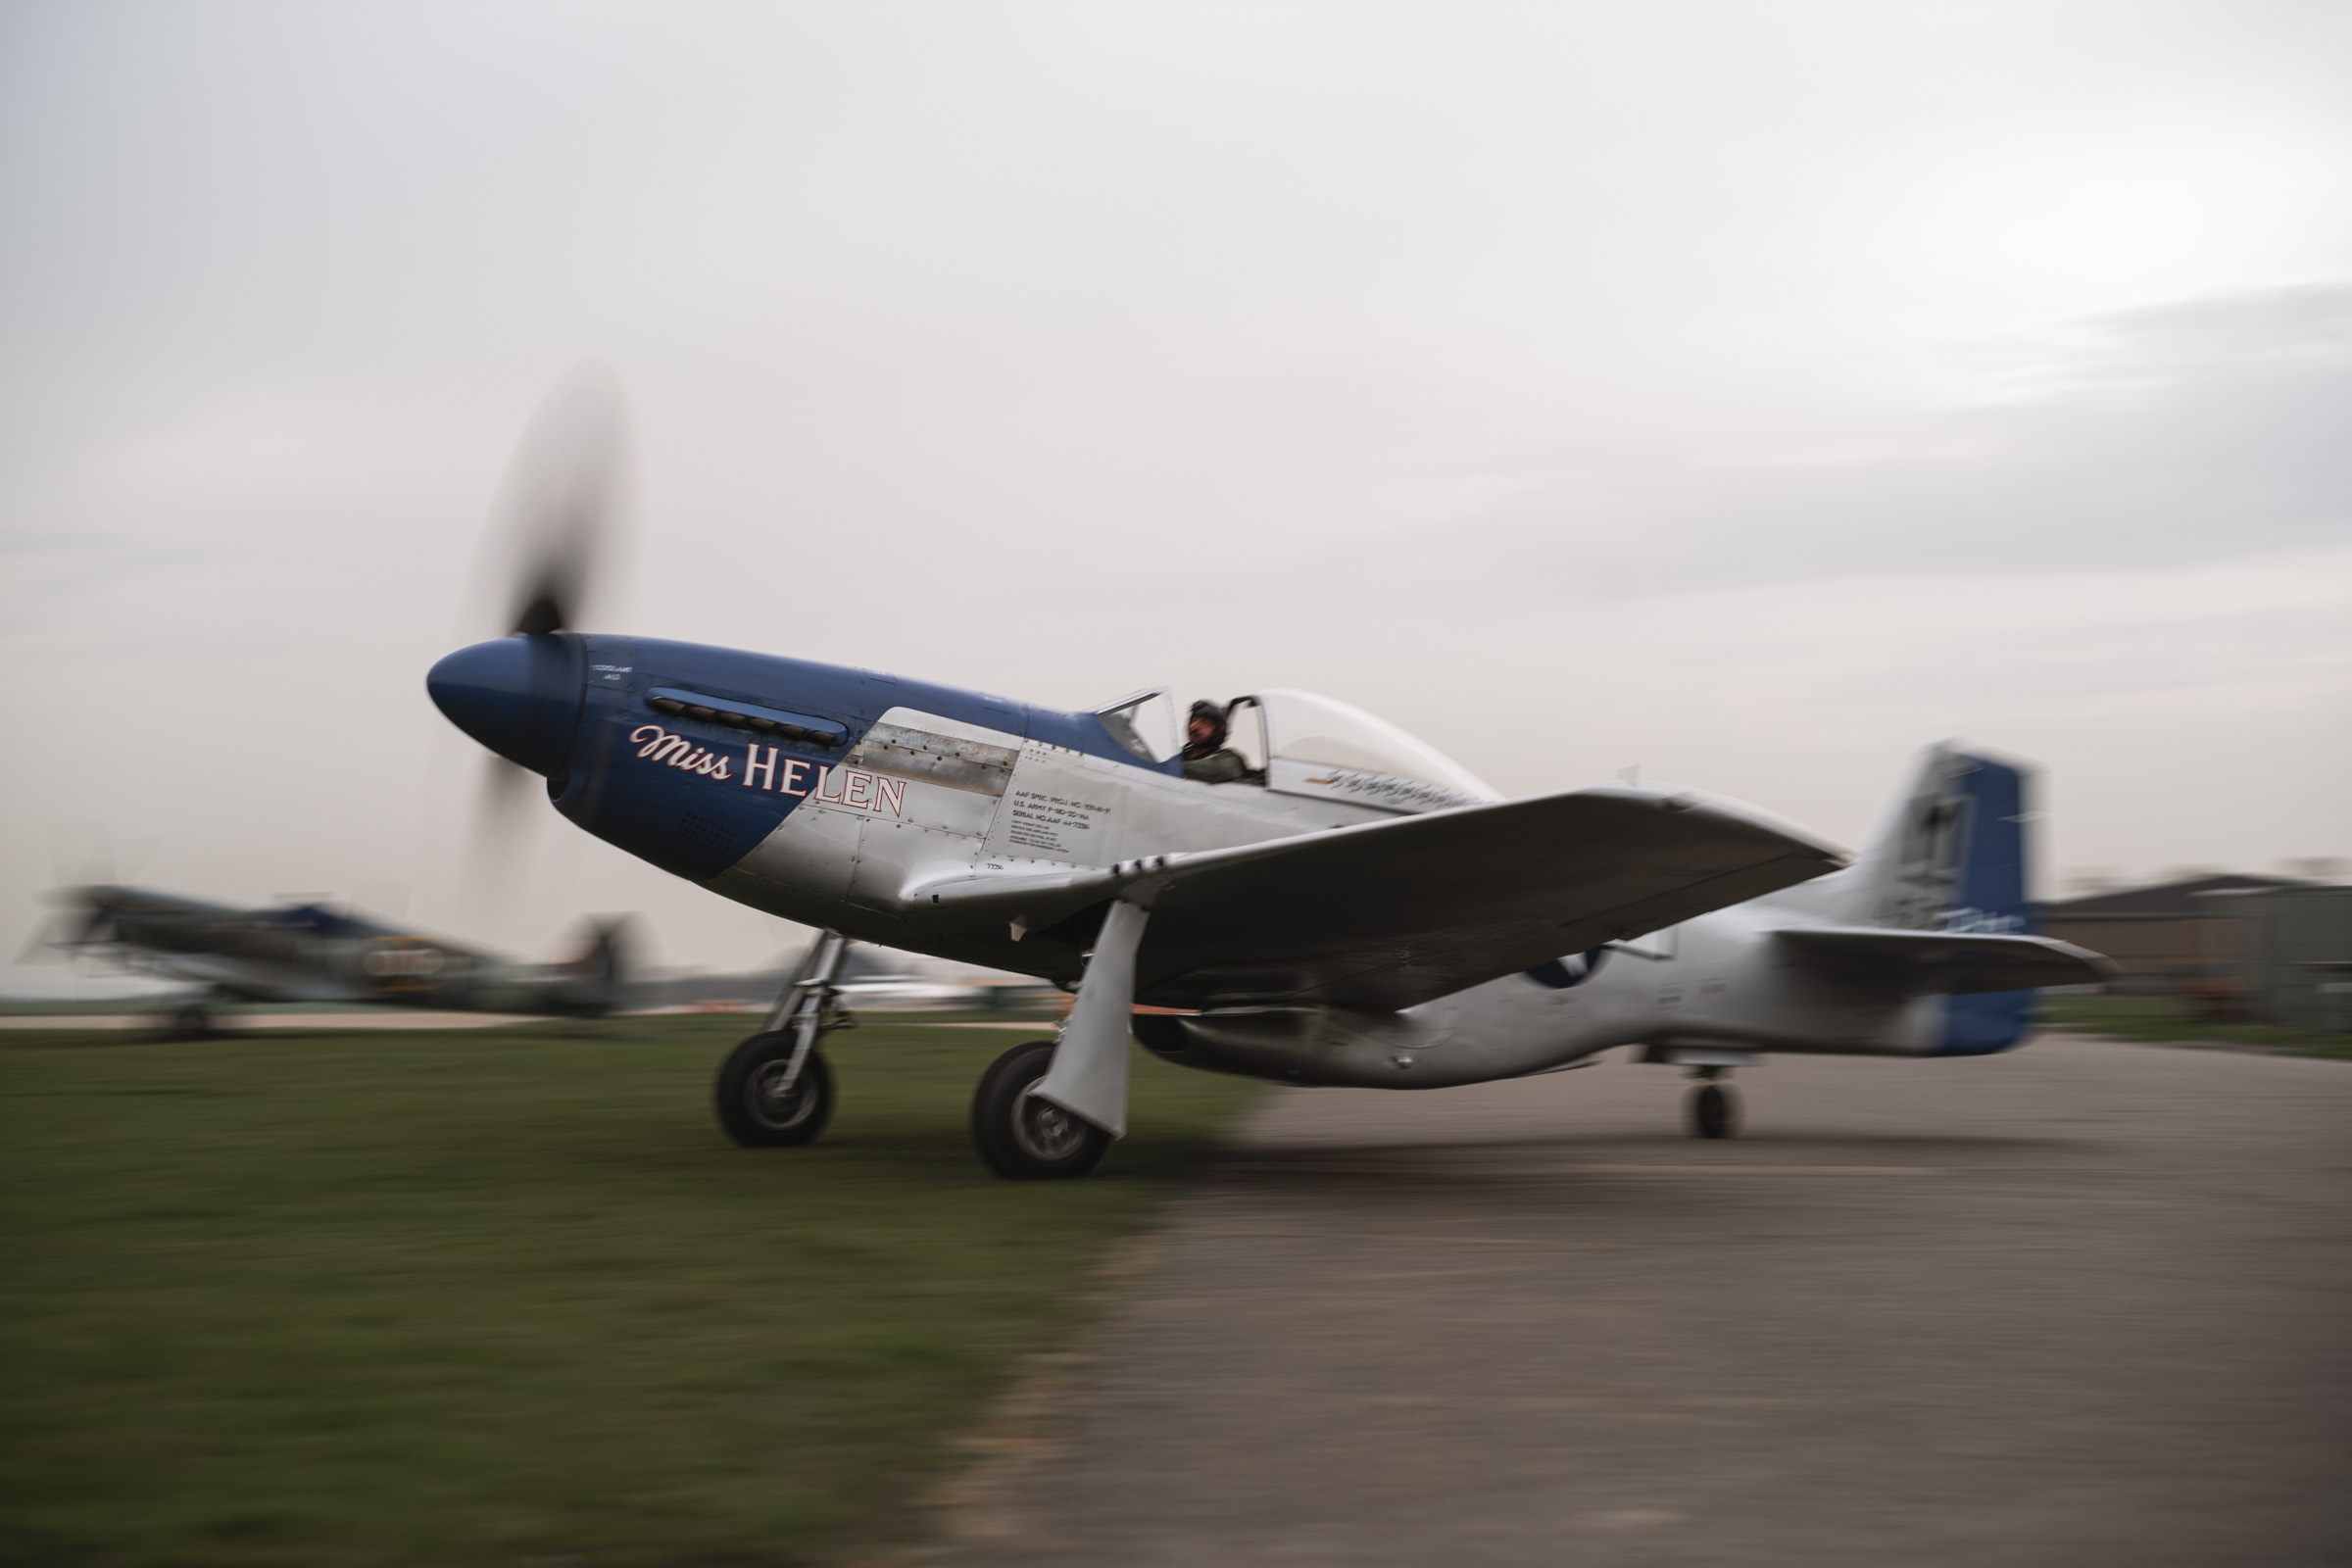 Mustang-Miss-Helen-taxiing-out